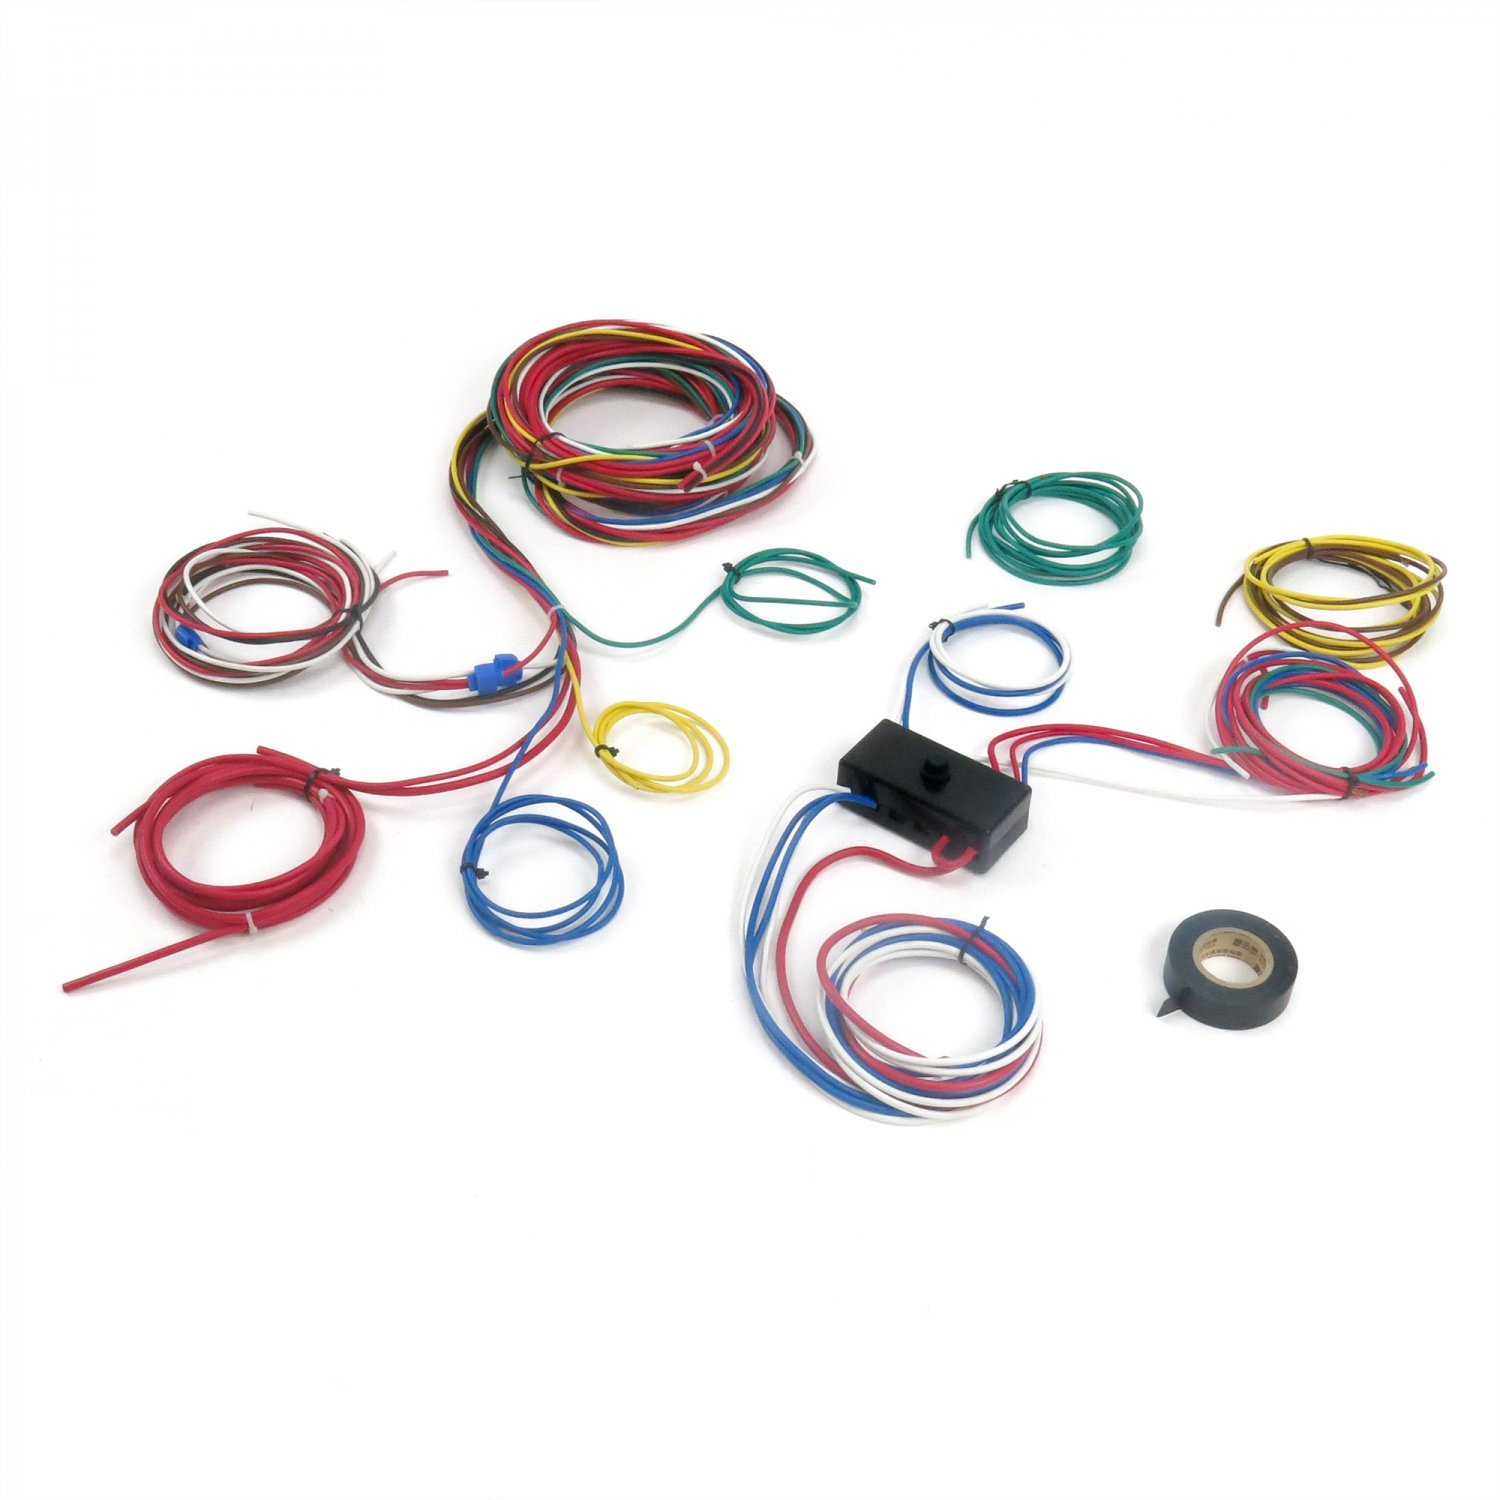 71TVBMHe8RL._SL1500_ amazon com keep it clean wiring accessories 9466 kic 1062666 dune Keep It Clean Wiring Accessories at virtualis.co